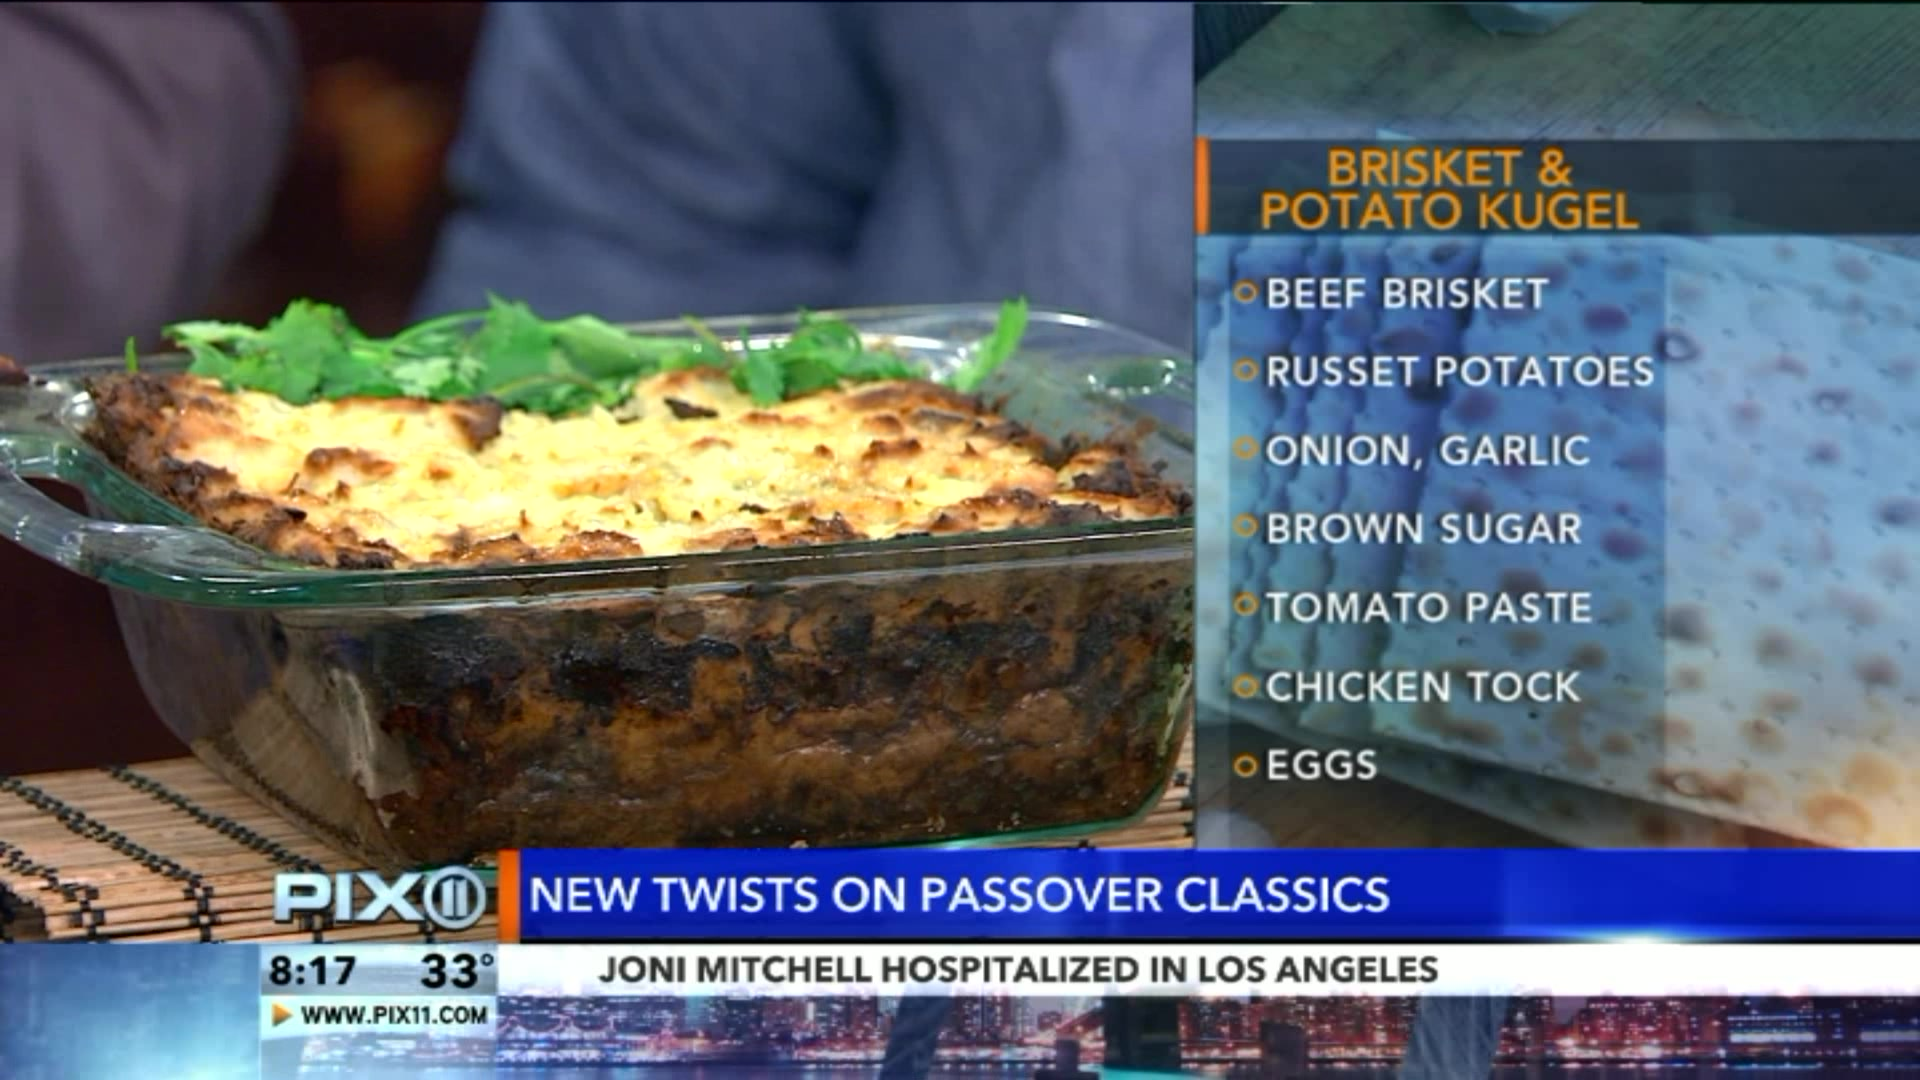 5 New Twists on Classic Passover Recipes